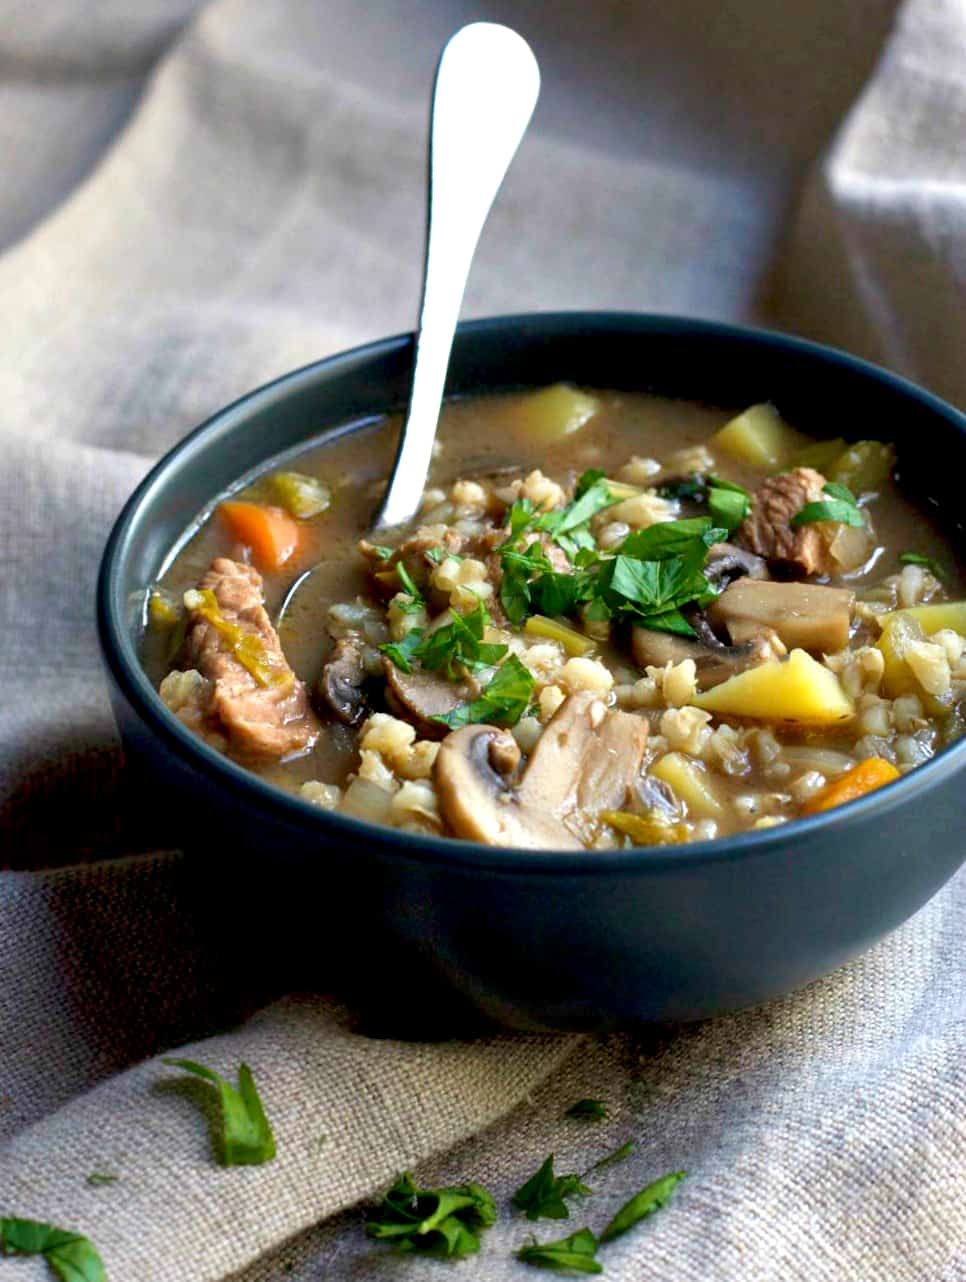 Slow Cooker Beef and Barley Soup in a bowl with a spoon sticking out.